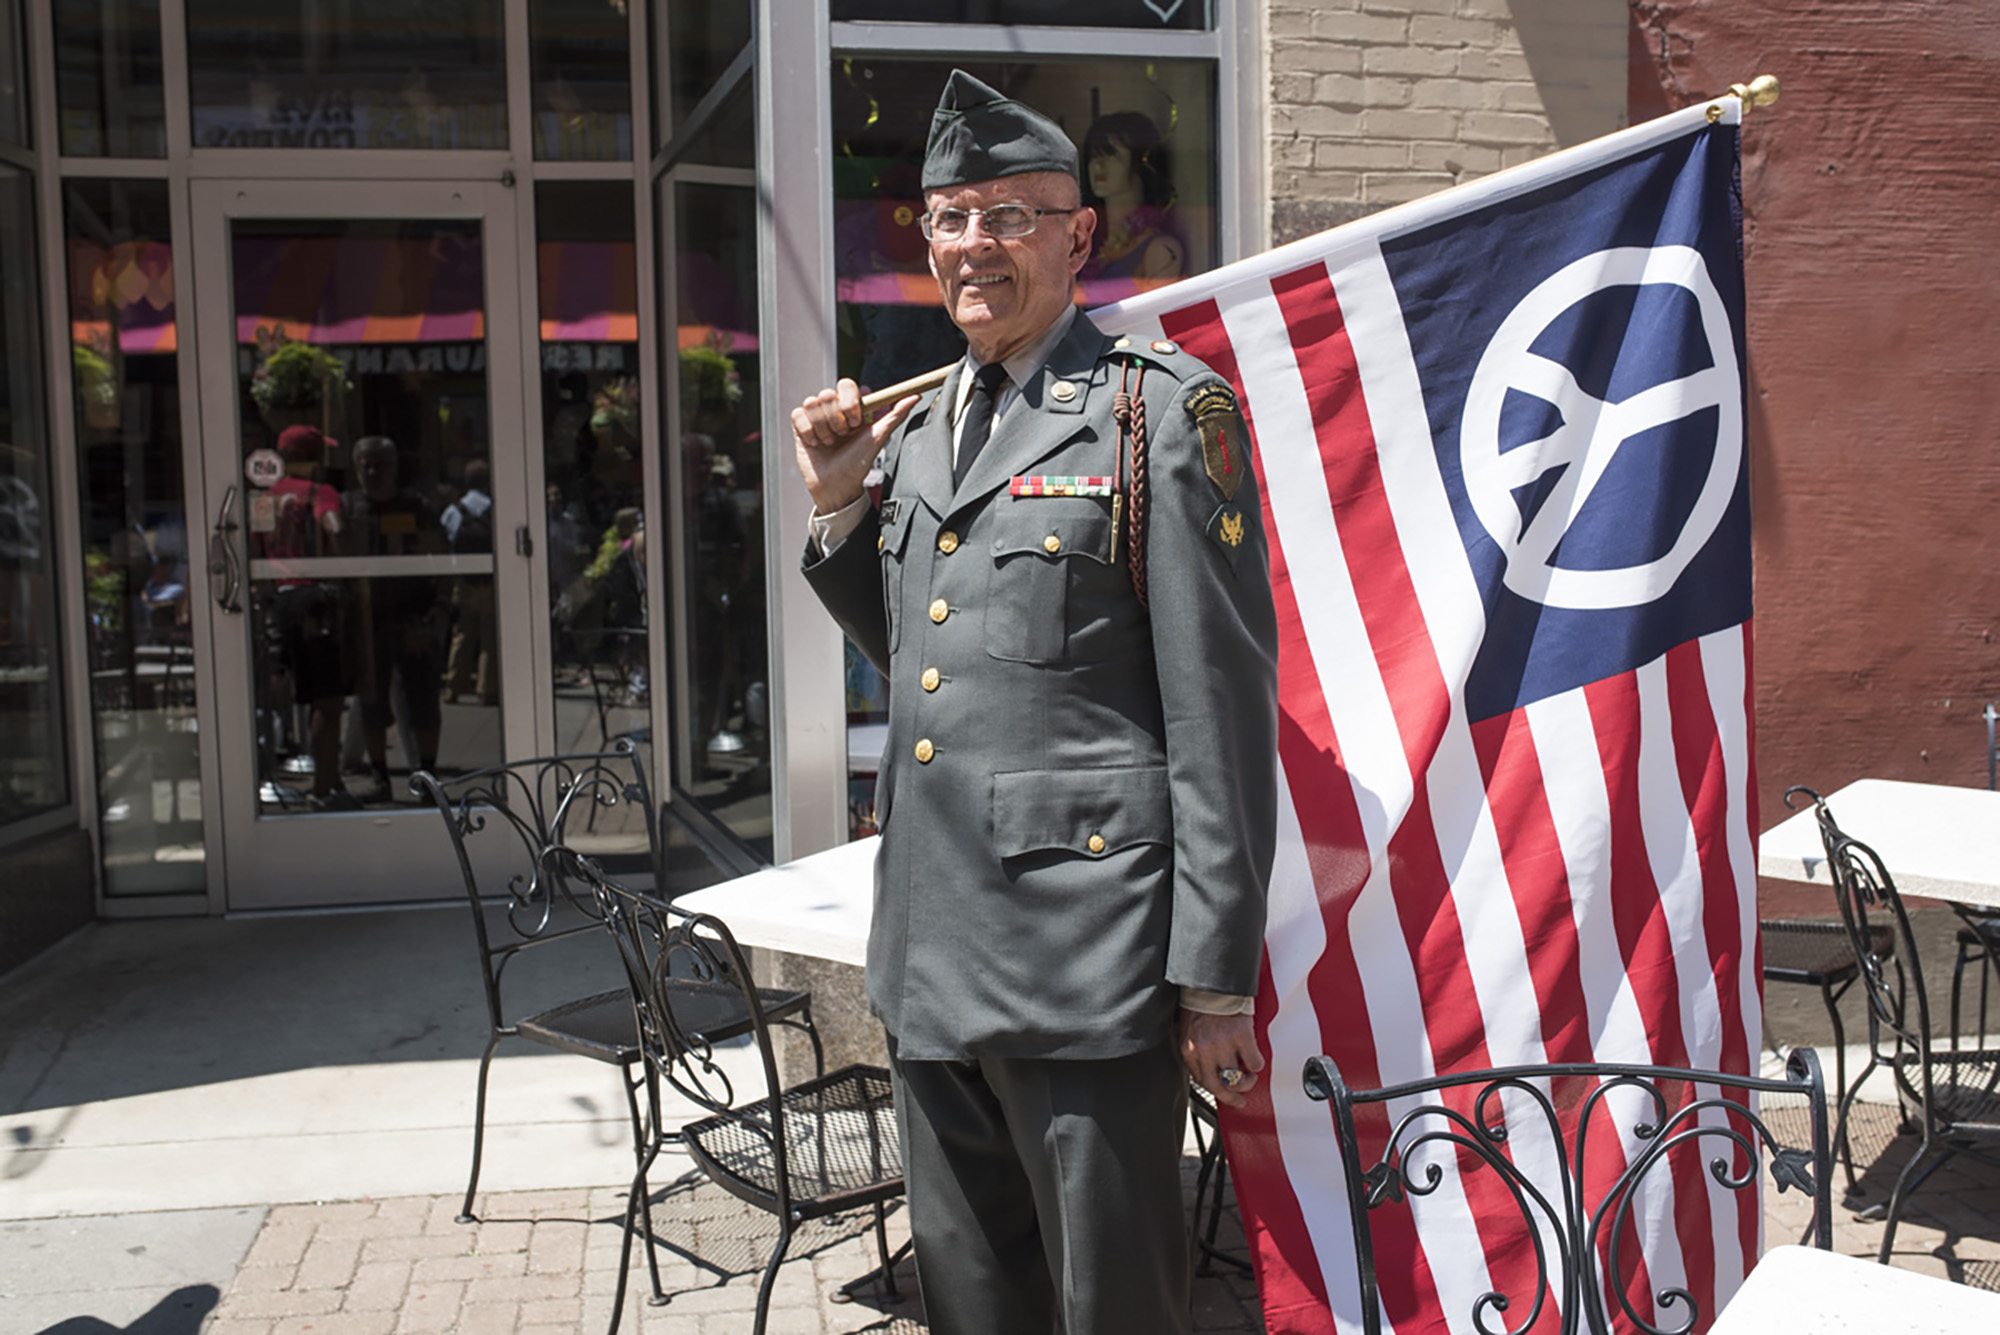 Lou Pumphrey, a Vietnam war veteran who does not support either Presidential Candidates Donald Trump or Hillary Clinton, participates in protests during day two of the Republican National Convention in downtown Cleveland, Tuesday, July 19th, 2016.